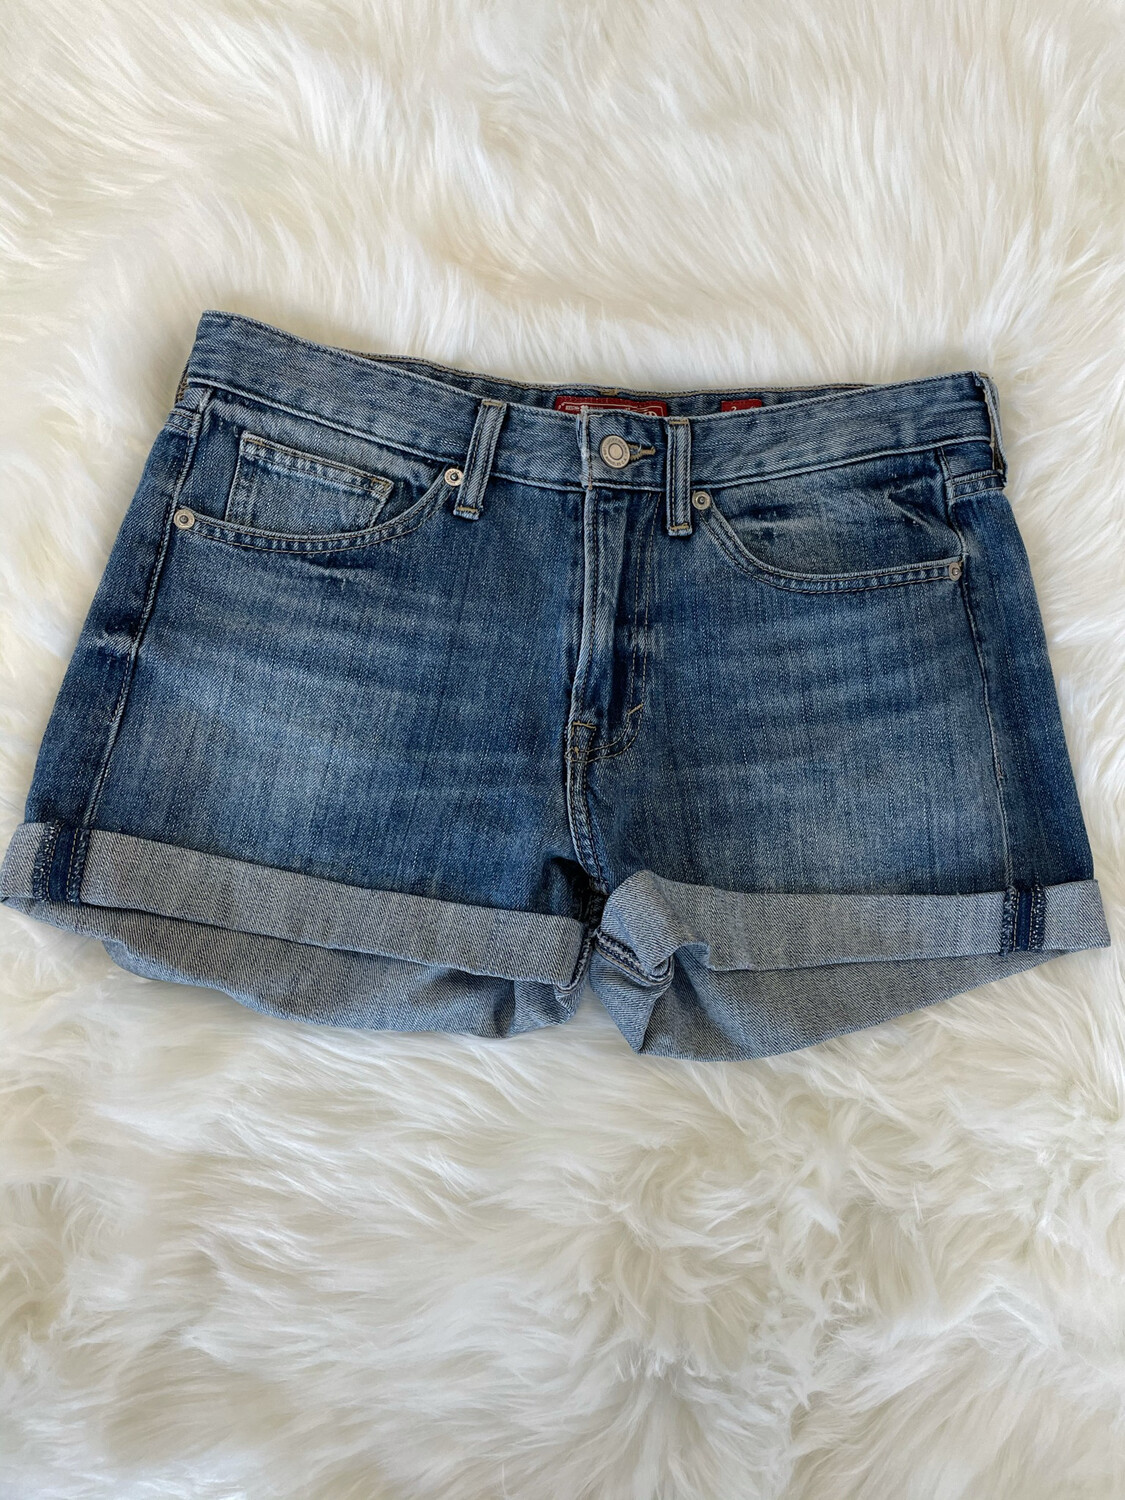 Lucky Brand Rolled Up Denim Shorts - Size 26